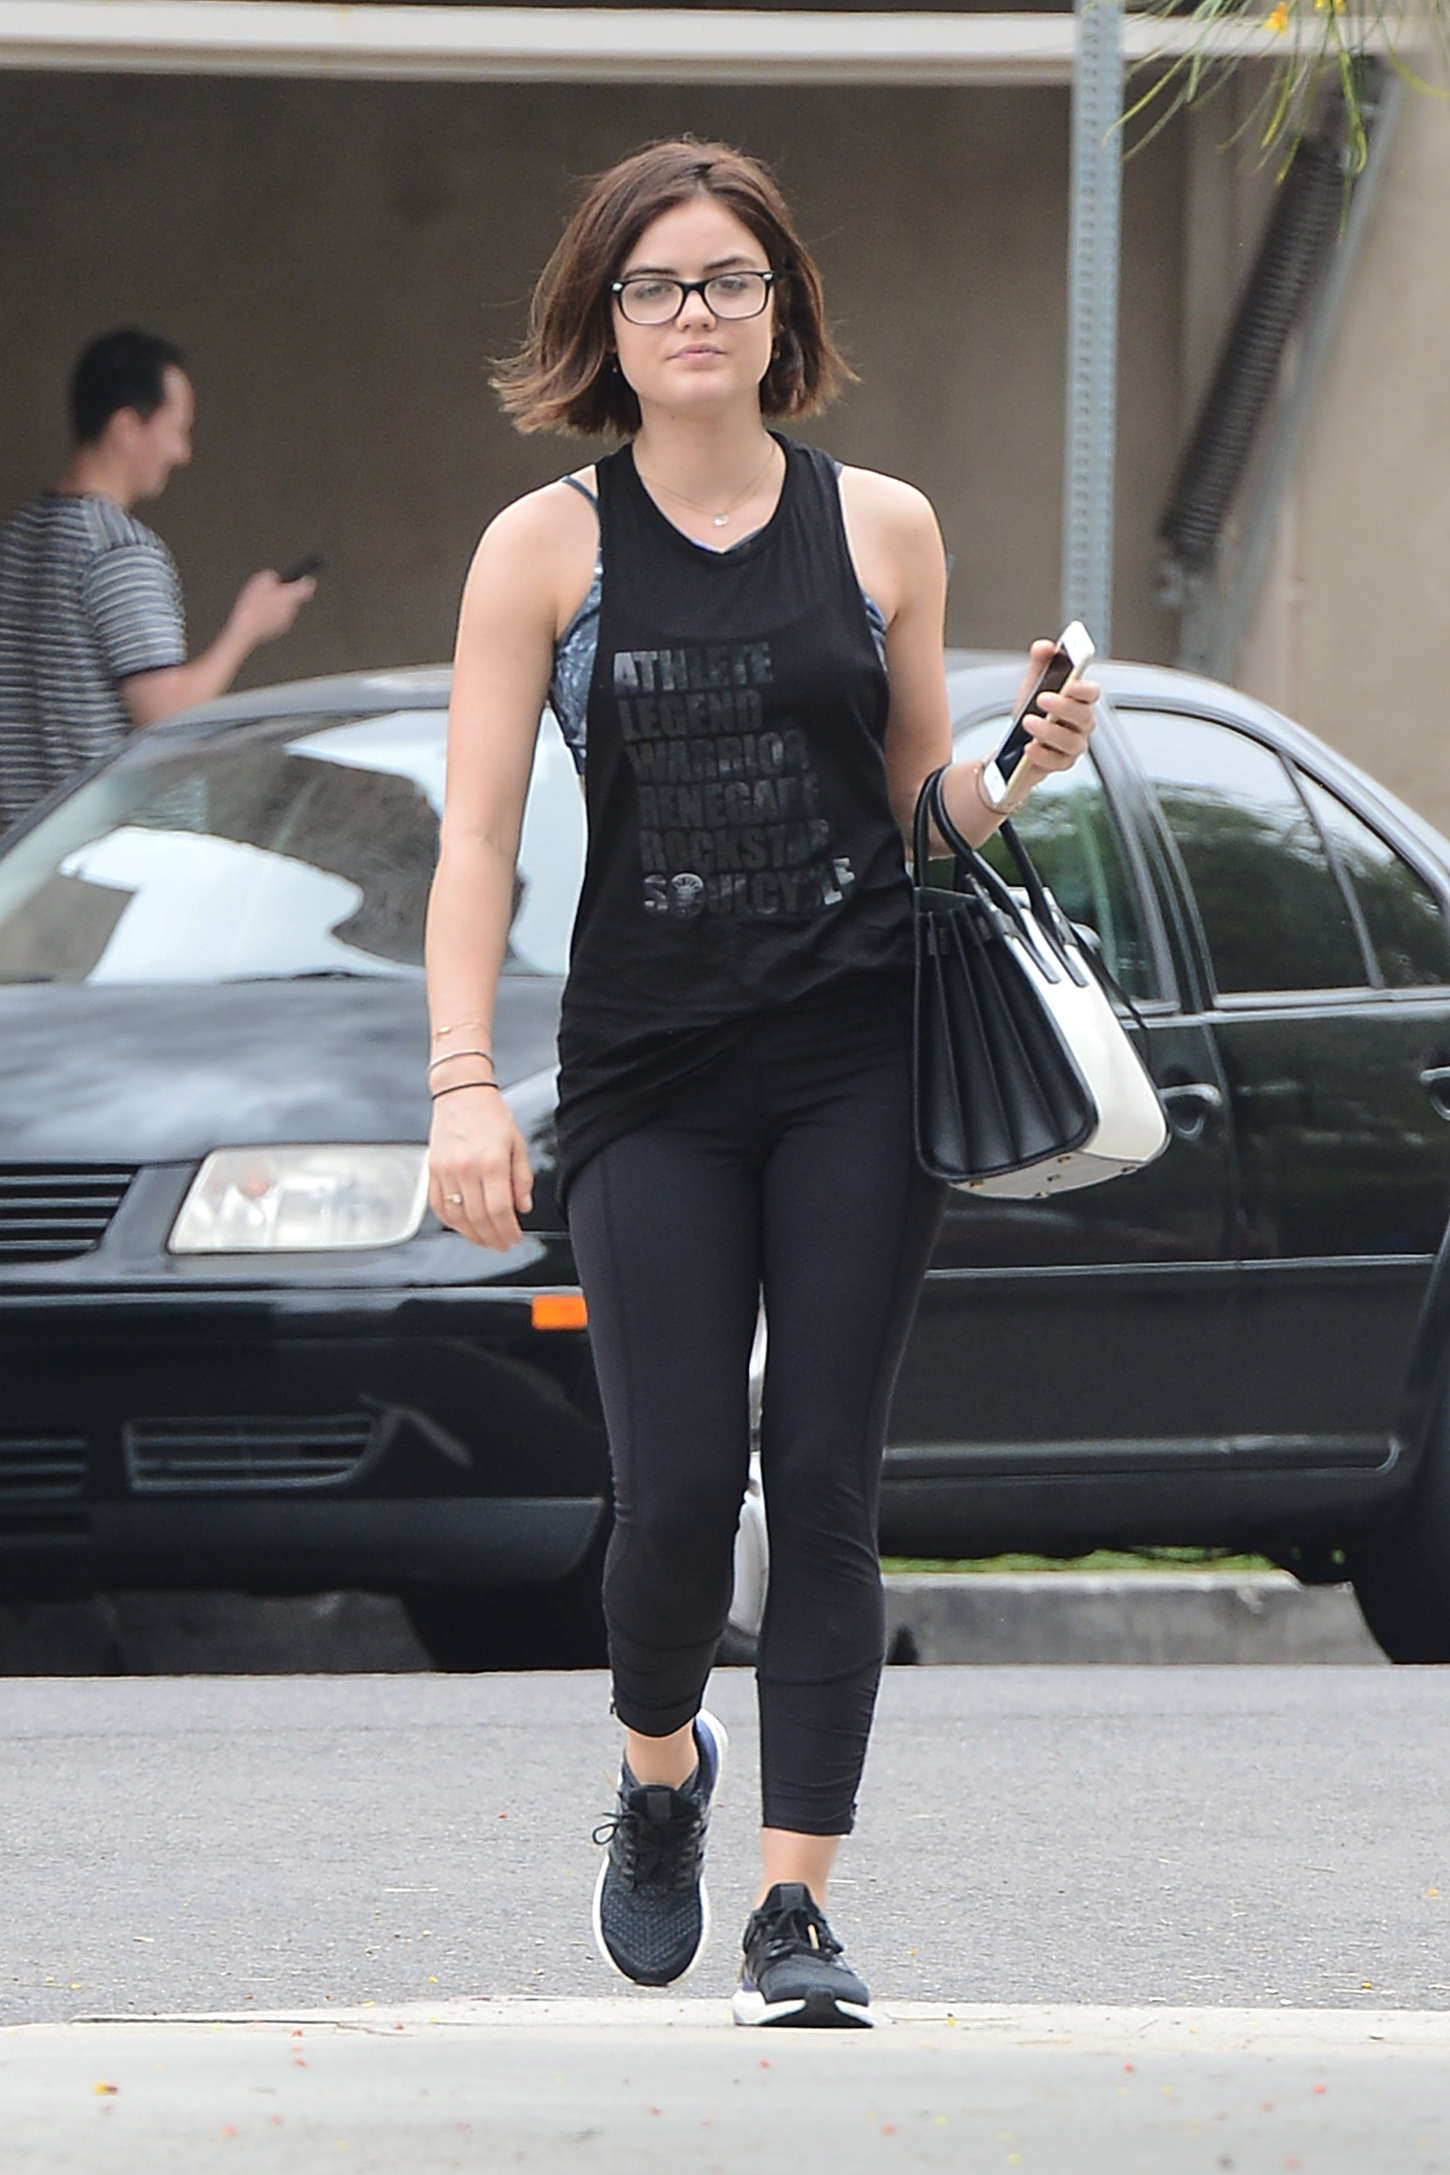 Lucy-Hale-in-Tights-Leaving-ENails--01.j